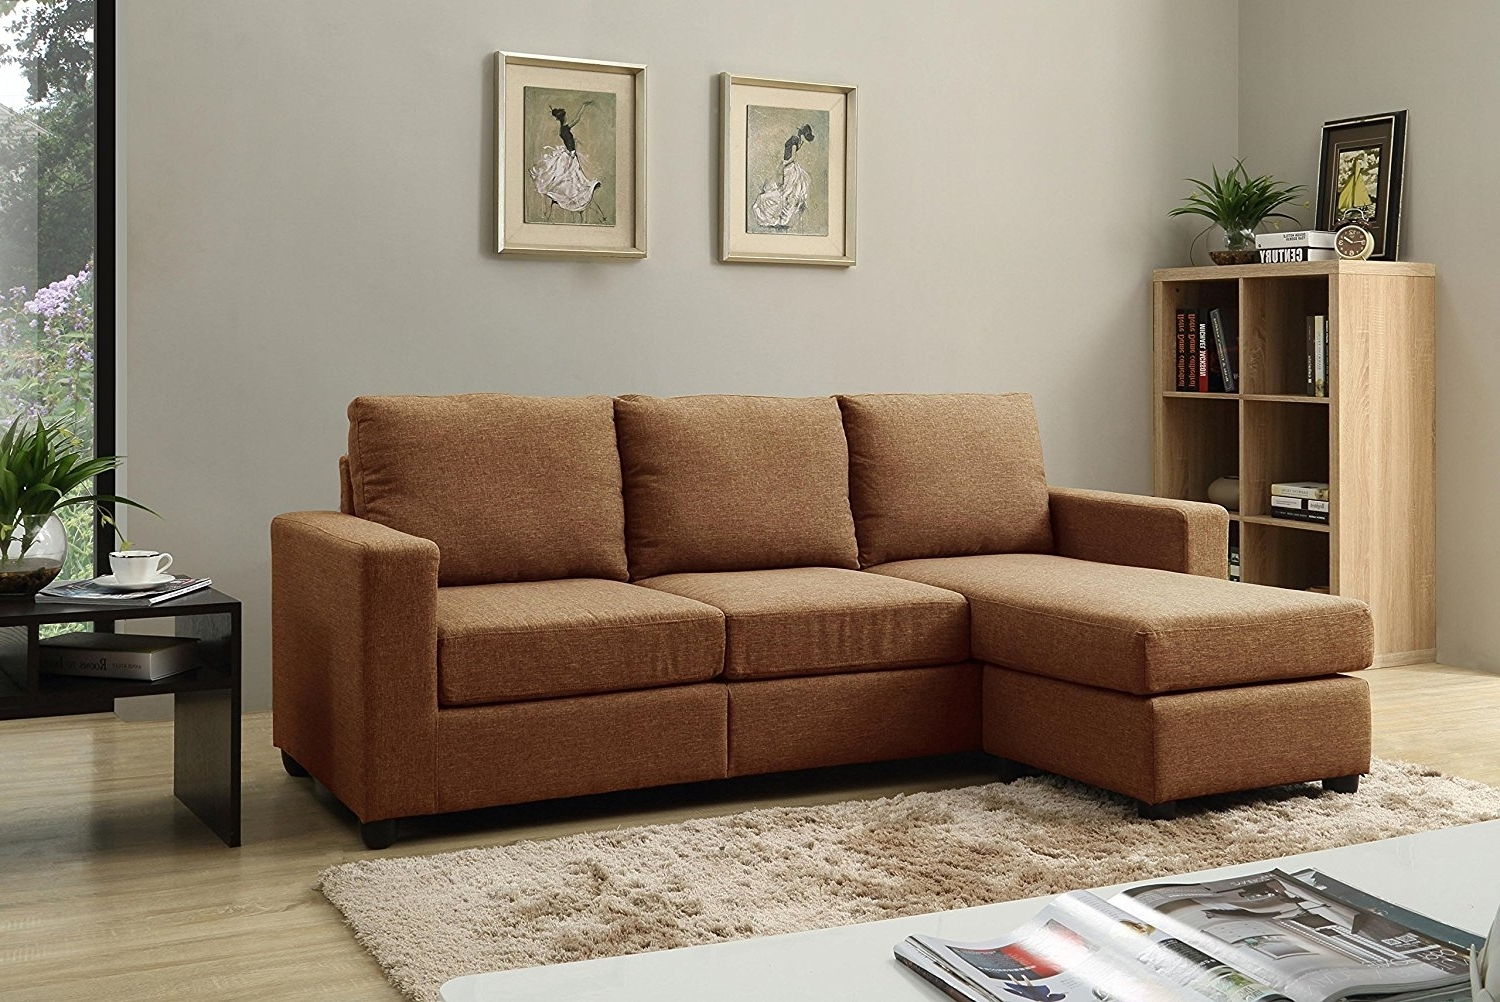 Amazon: Nhi Express Alexandra Convertible Sectional Sofa Pertaining To Widely Used Convertible Sectional Sofas (View 10 of 15)